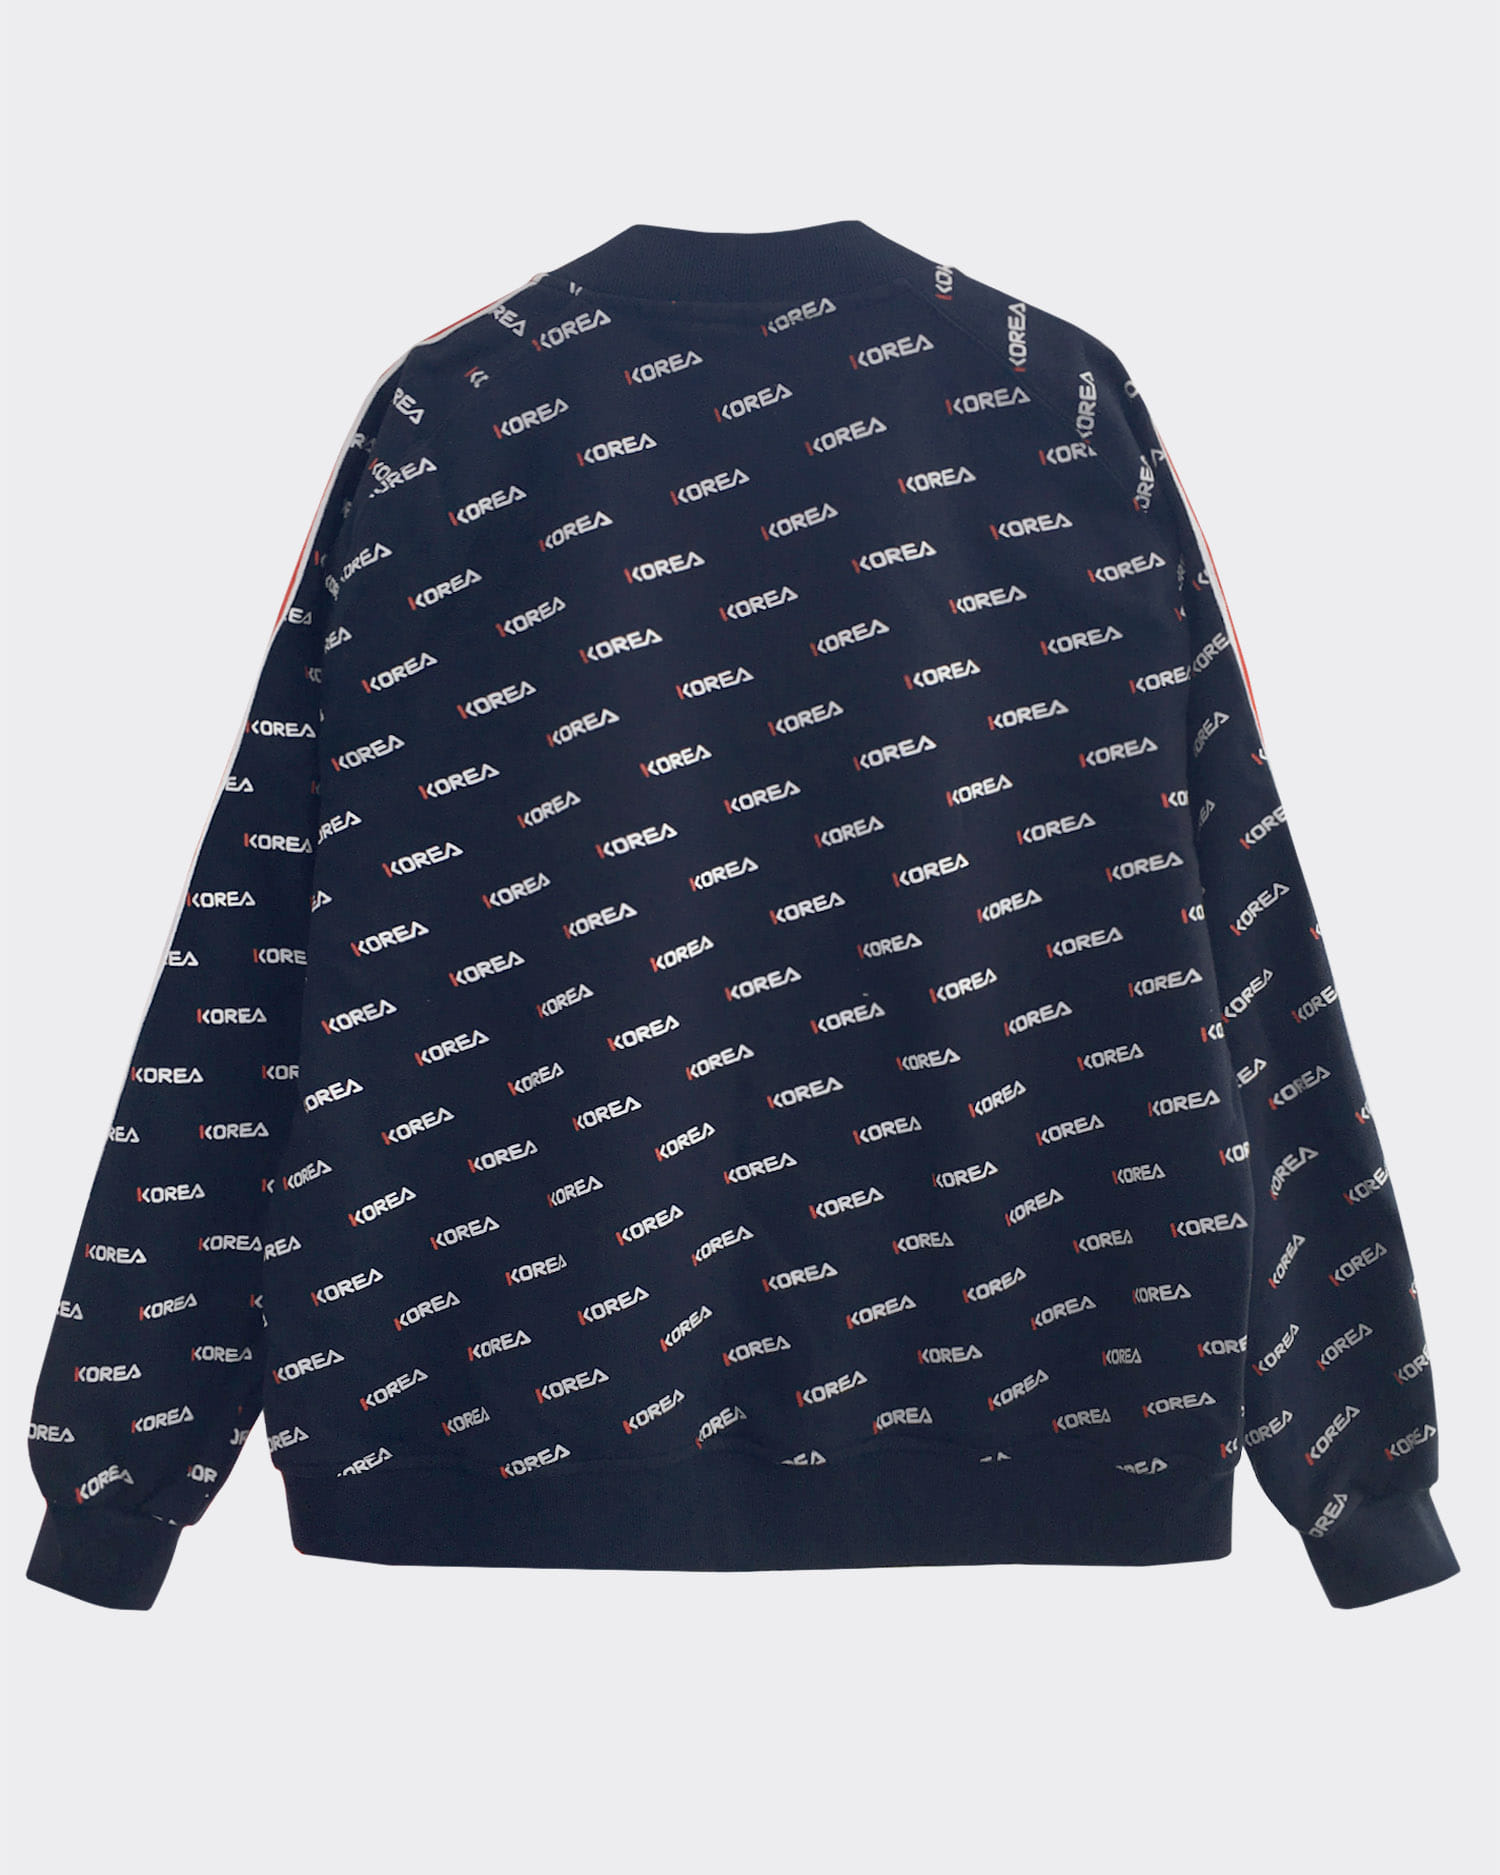 코리아 패턴 자켓 Korea pattern bomber jacket (Navy)